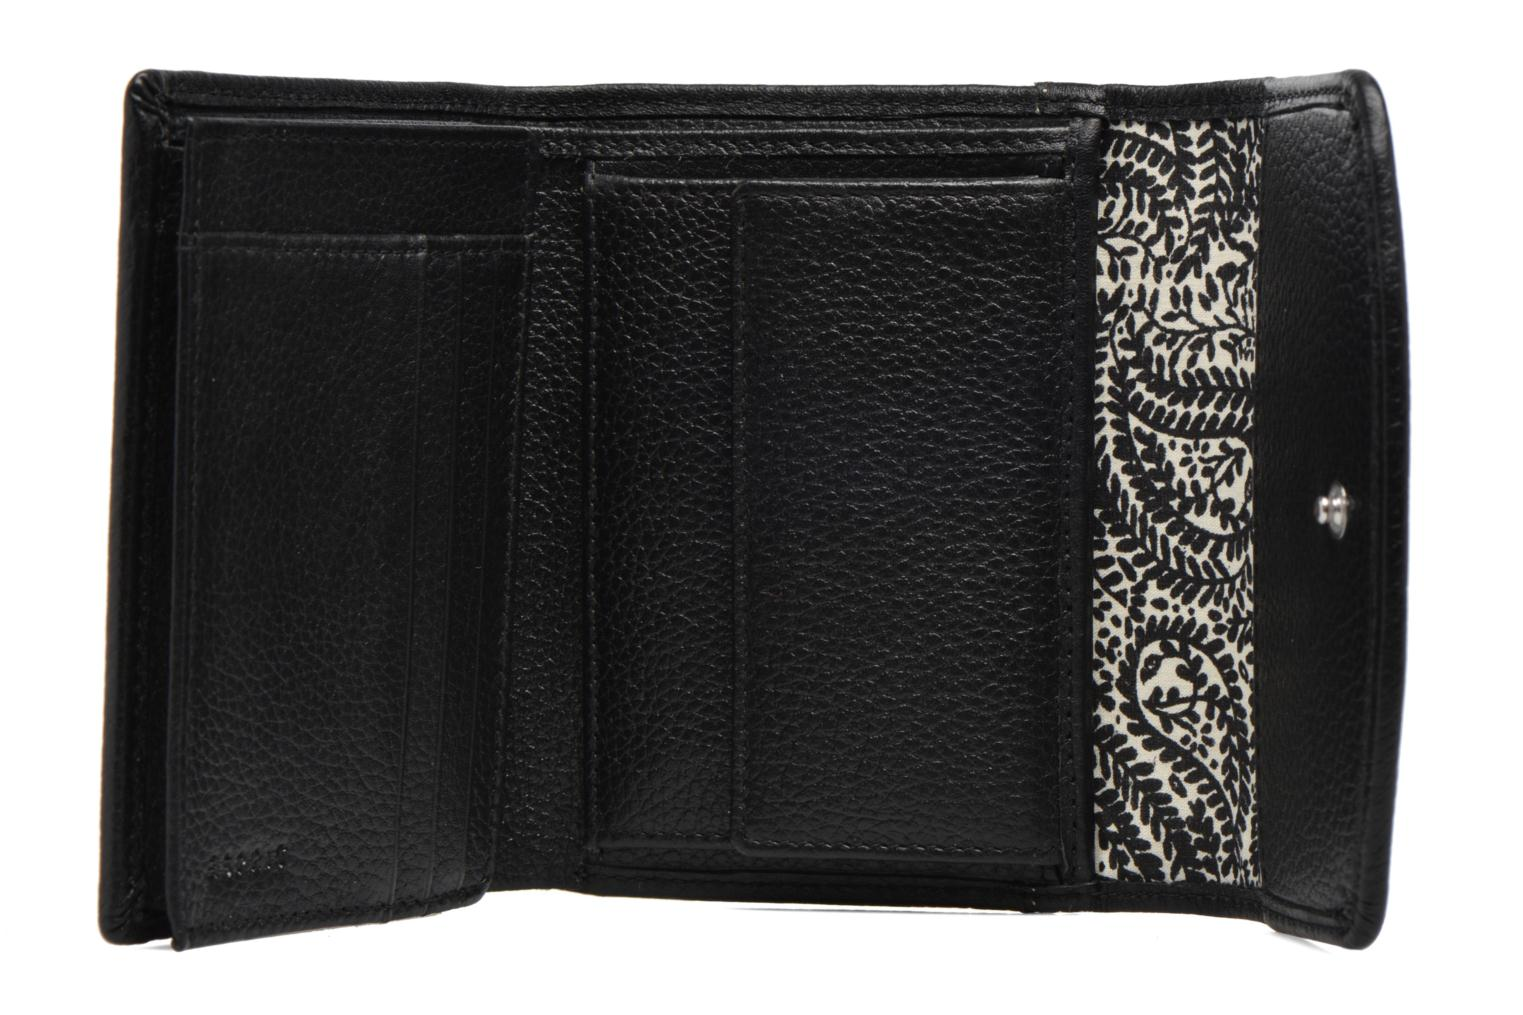 Classic leather city wallet Black